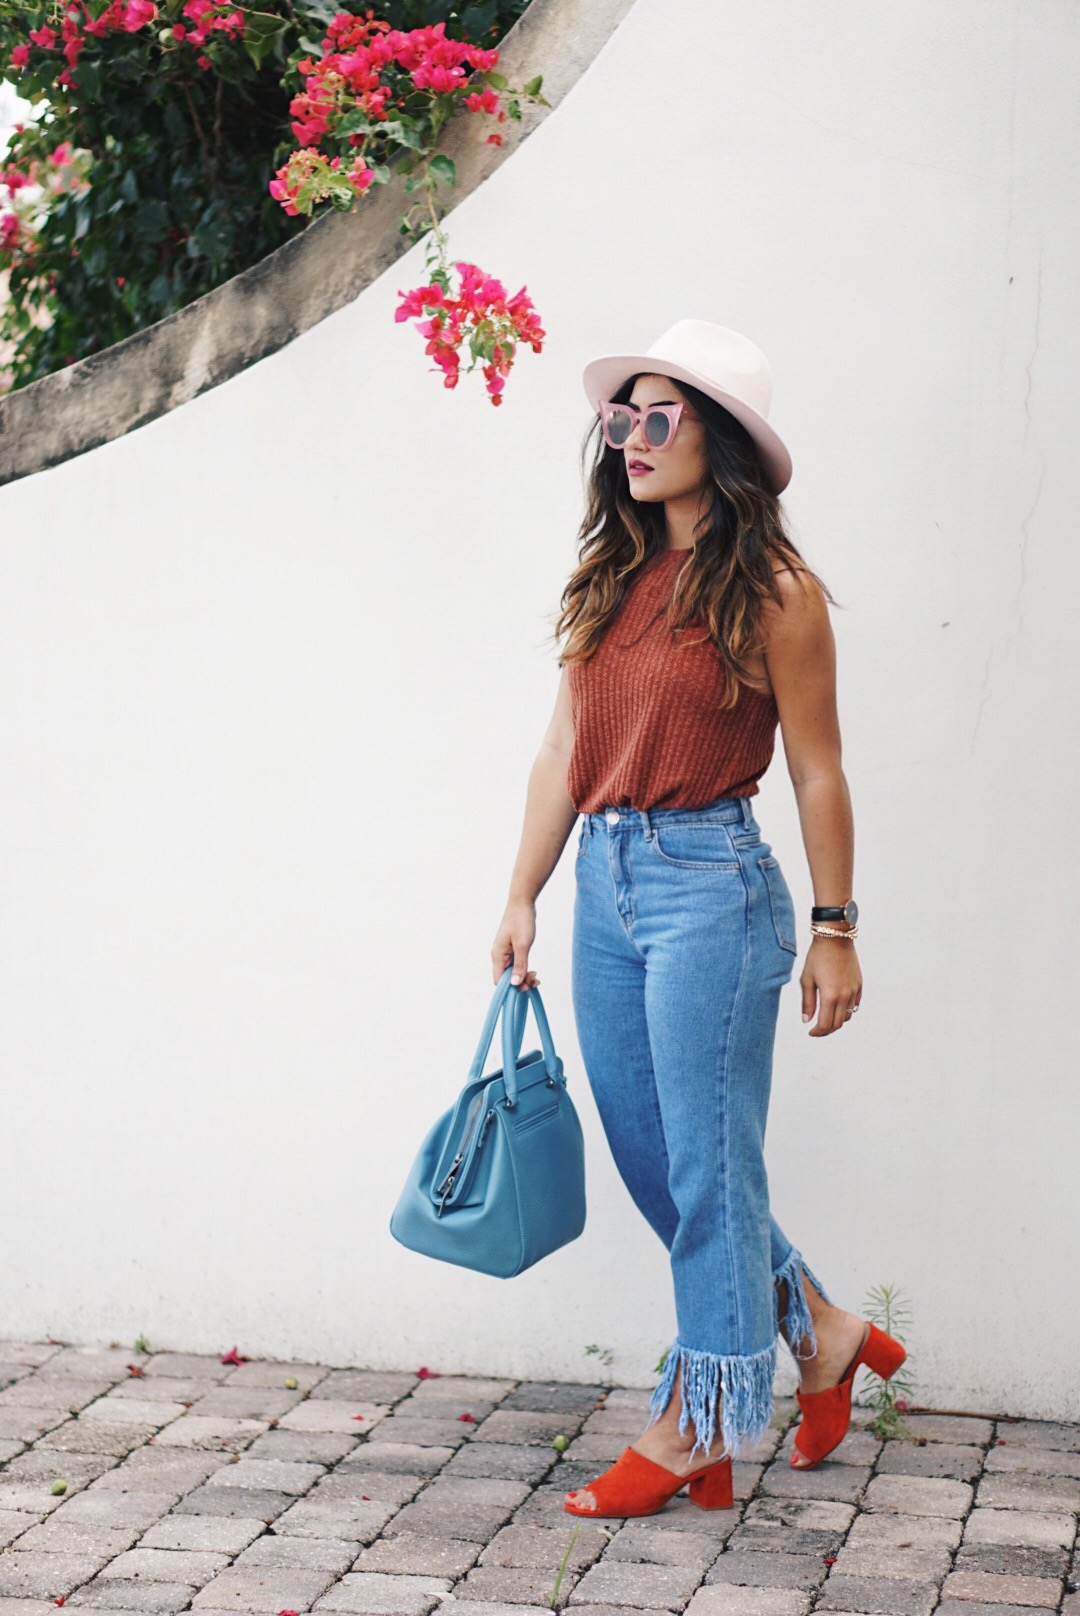 Sugar Love Chic blogger Krista Perez shares a Fringe Jeans and Mules outfit